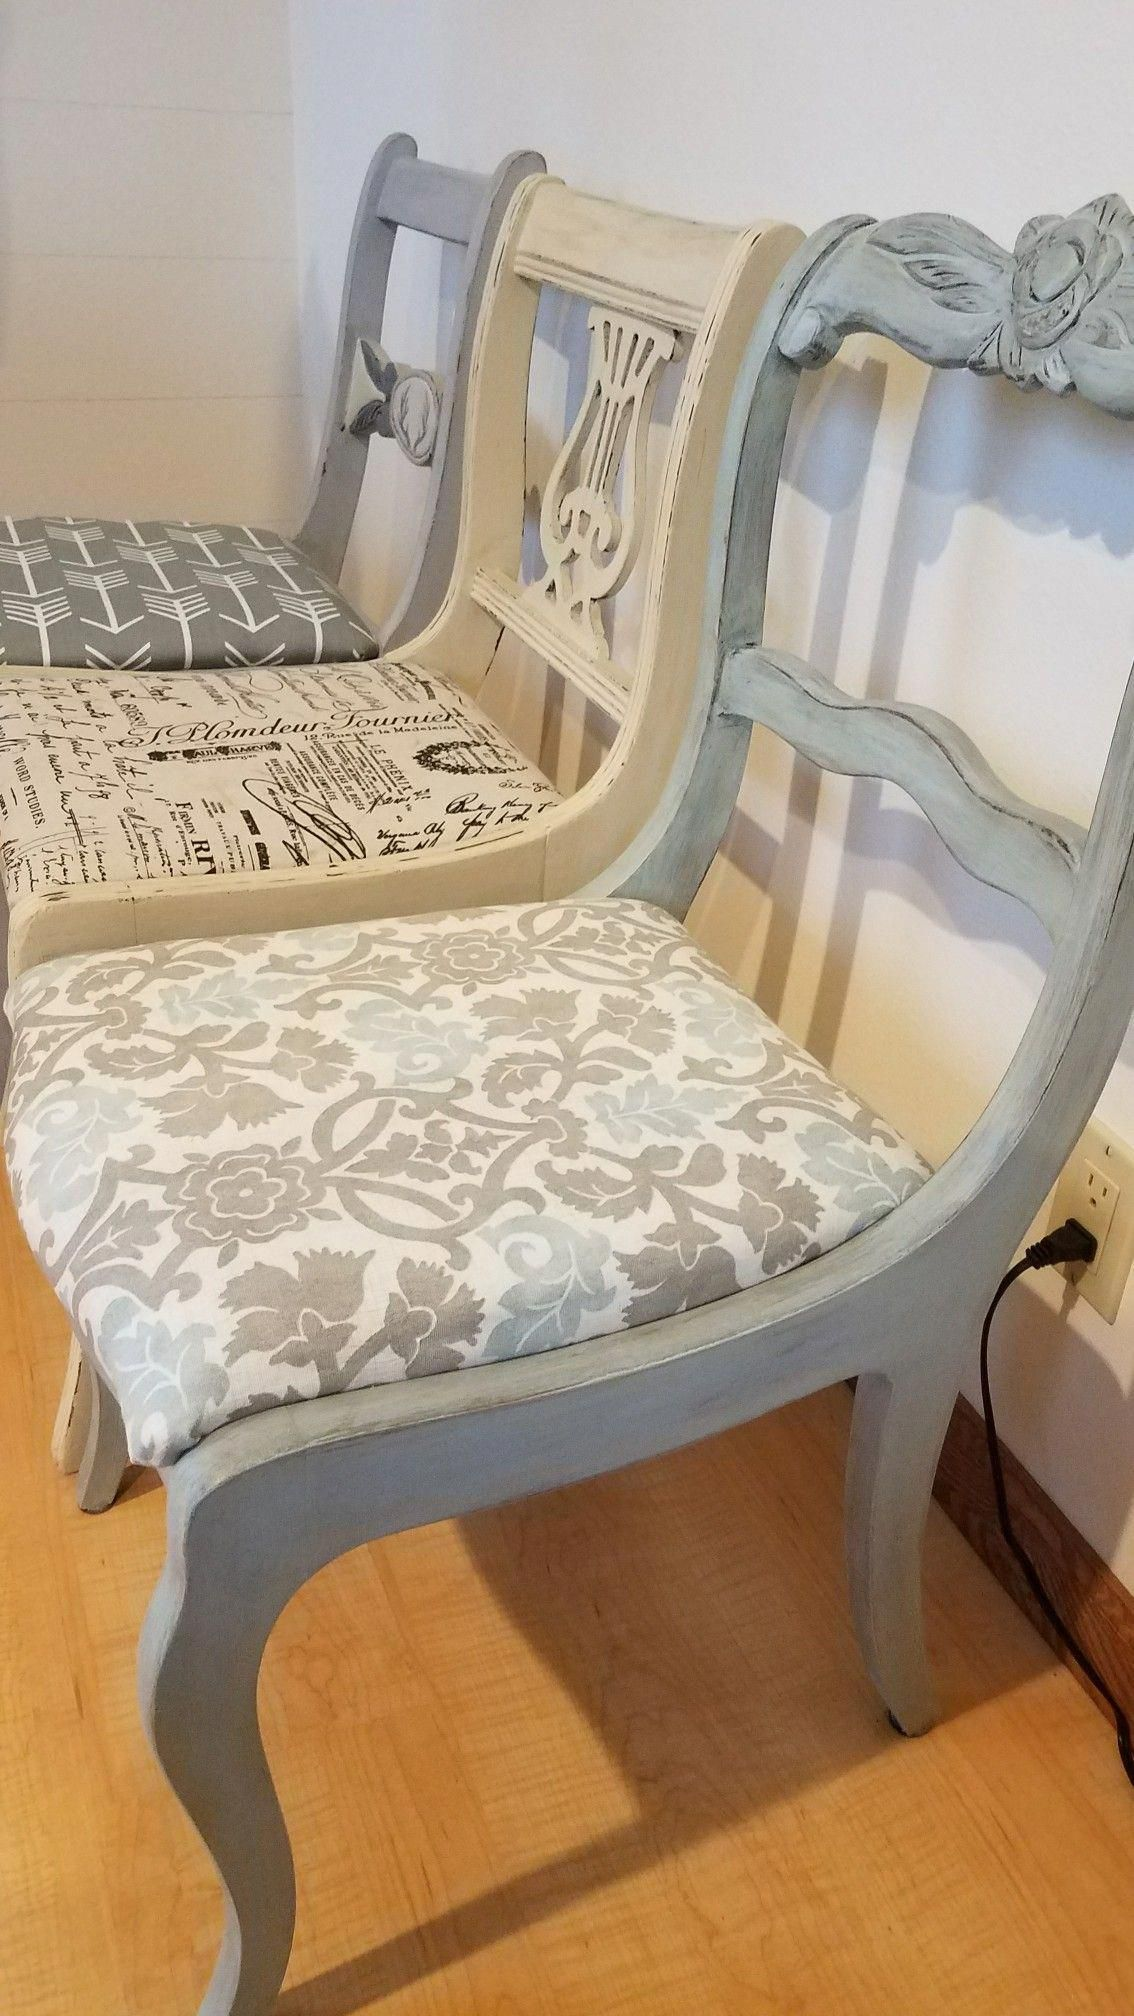 Refurbished Chairs Refurbished Chairs Chalk Painted And Dark Wax